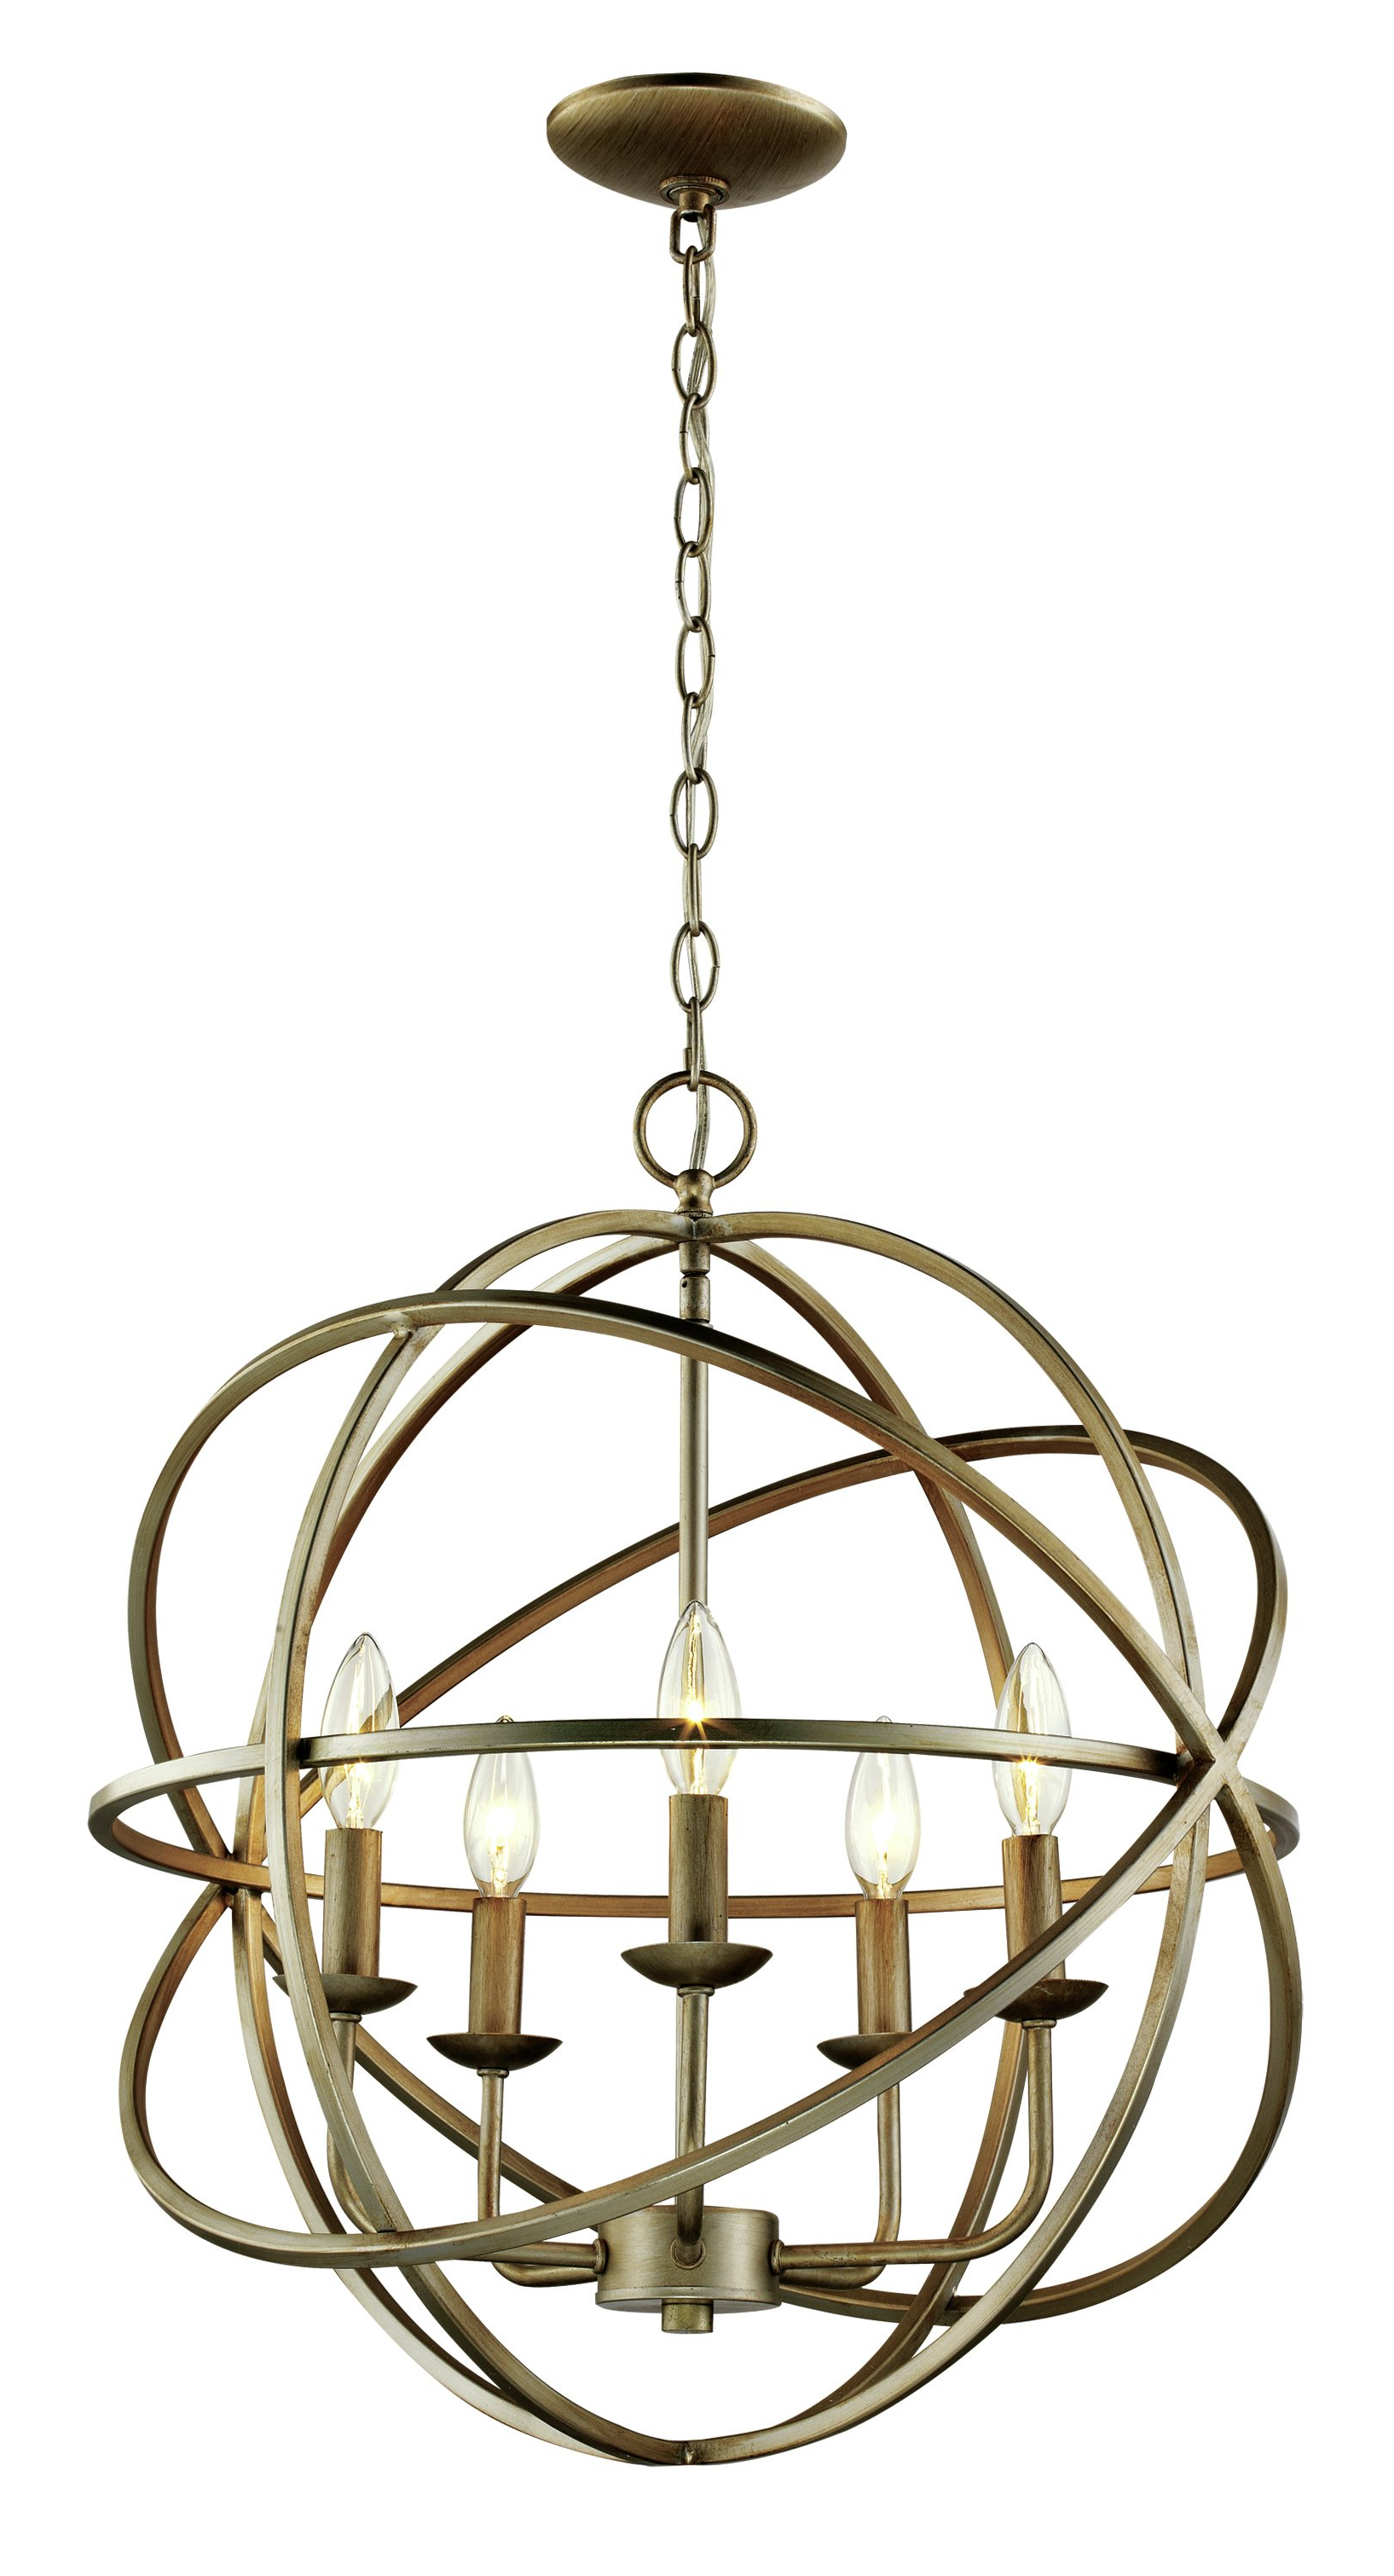 Waldron 5 Light Globe Chandeliers Regarding Popular Hankinson 5 Light Globe Chandelier (View 4 of 20)